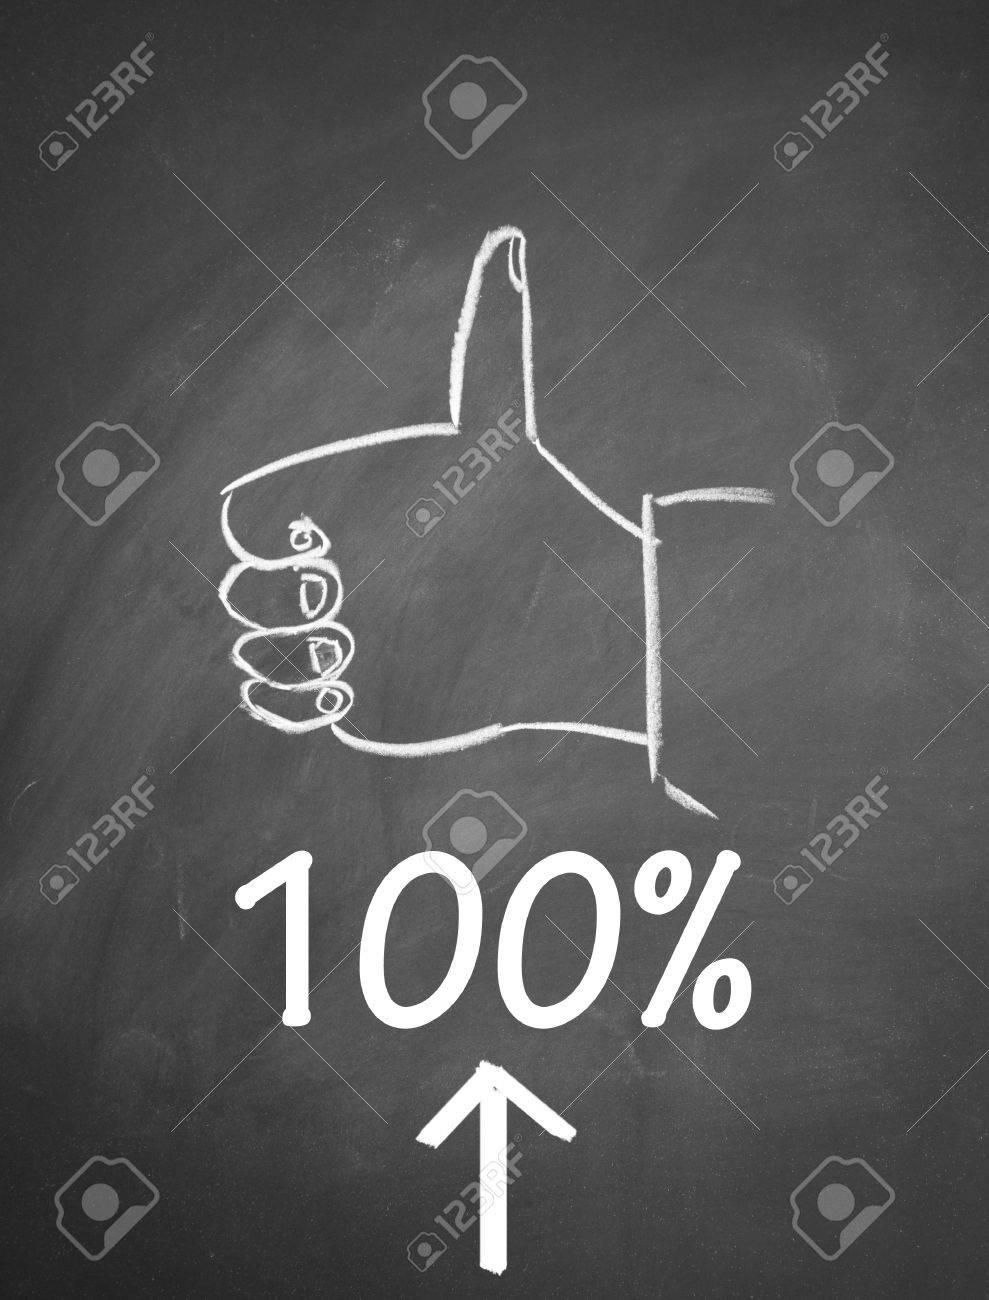 thumb up gesture drawn with chalk on blackboard Stock Photo - 14164304